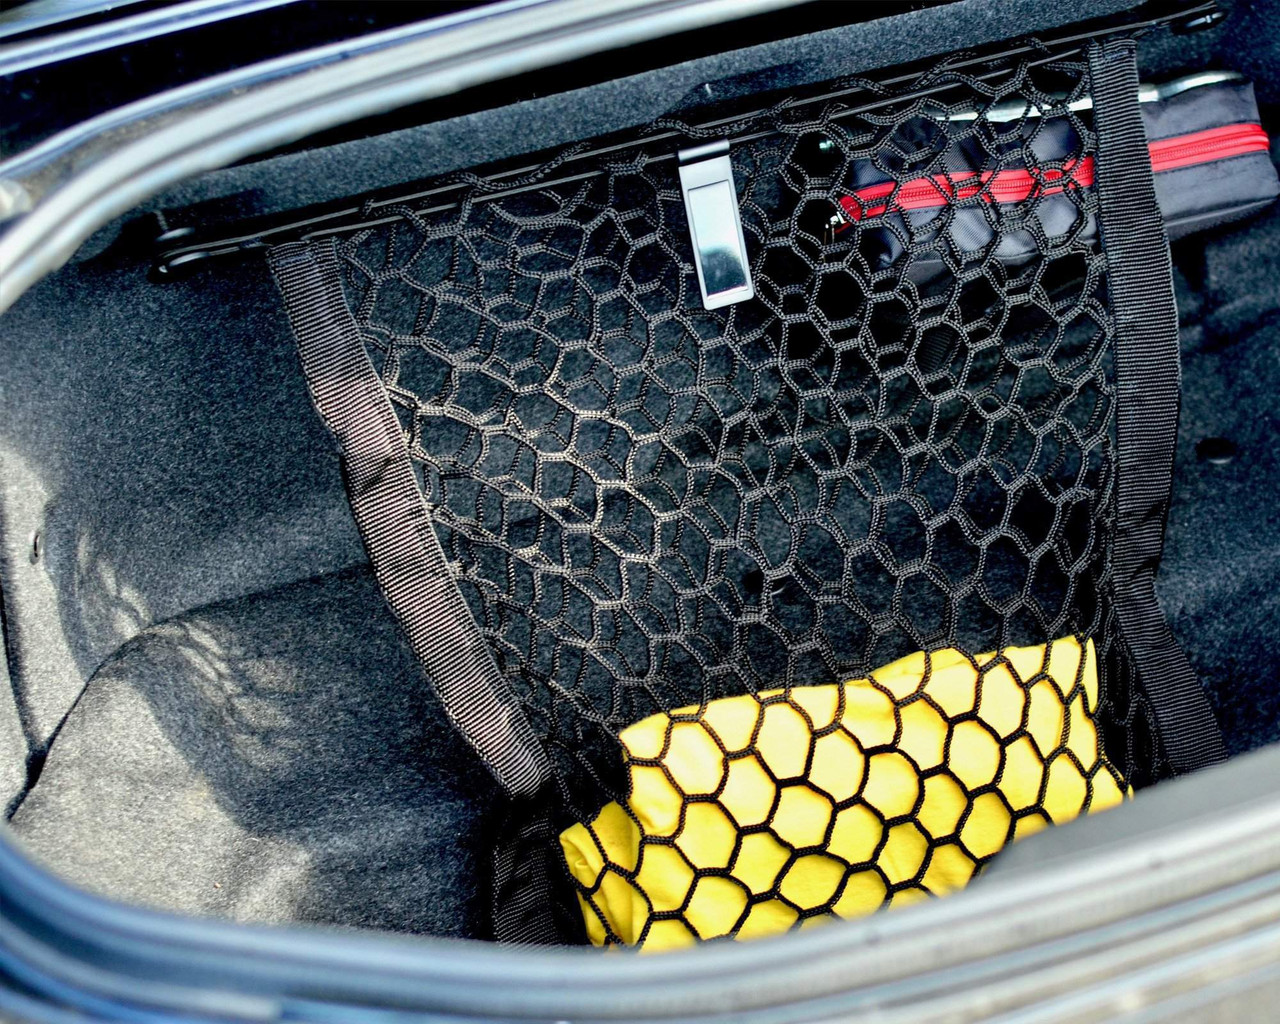 2017-on 124 Spider Trunk Storage Cargo Net